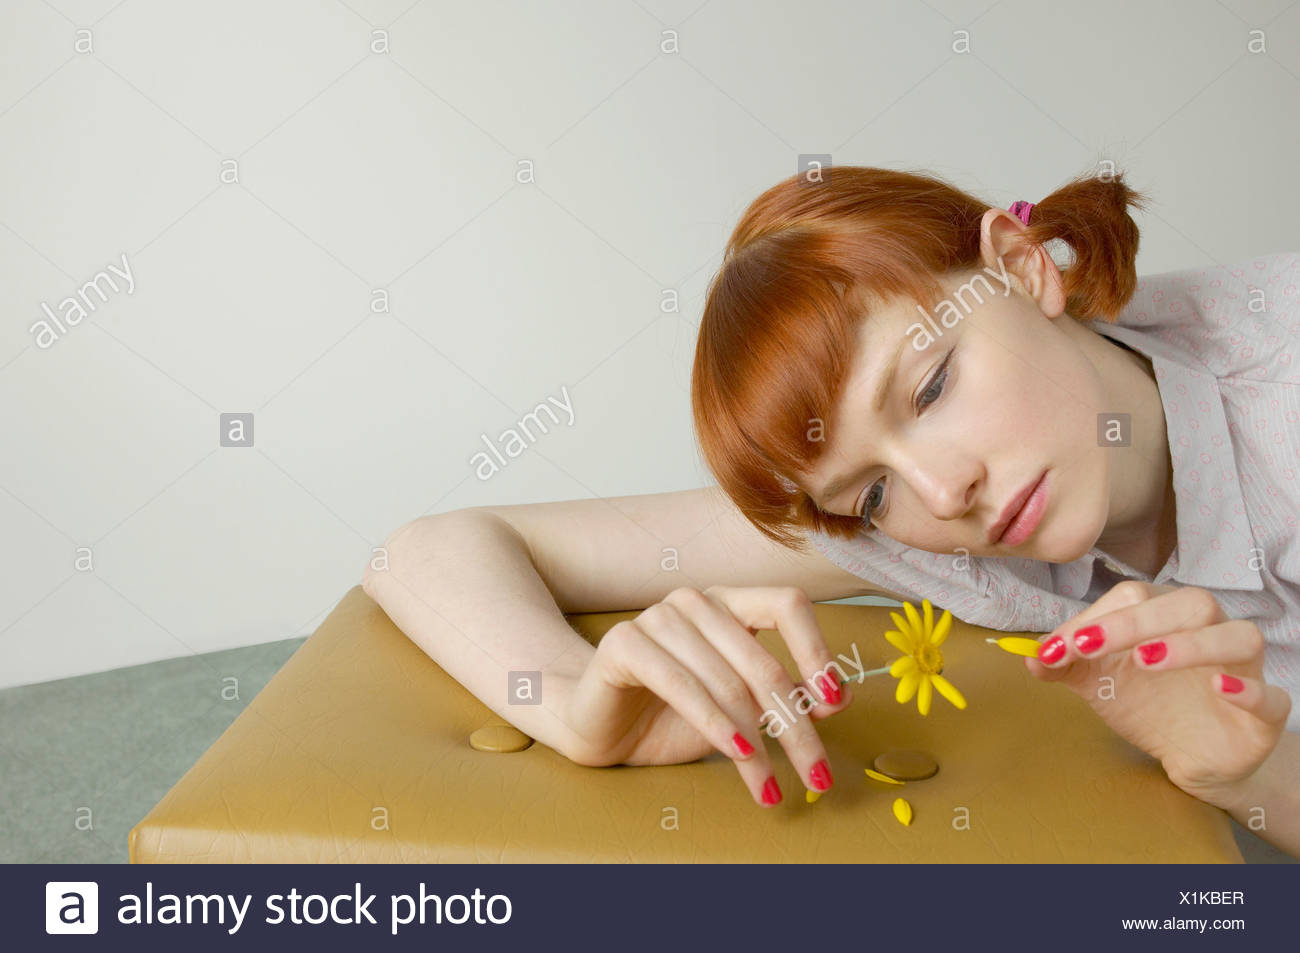 woman pulling petals from daisy - Stock Image